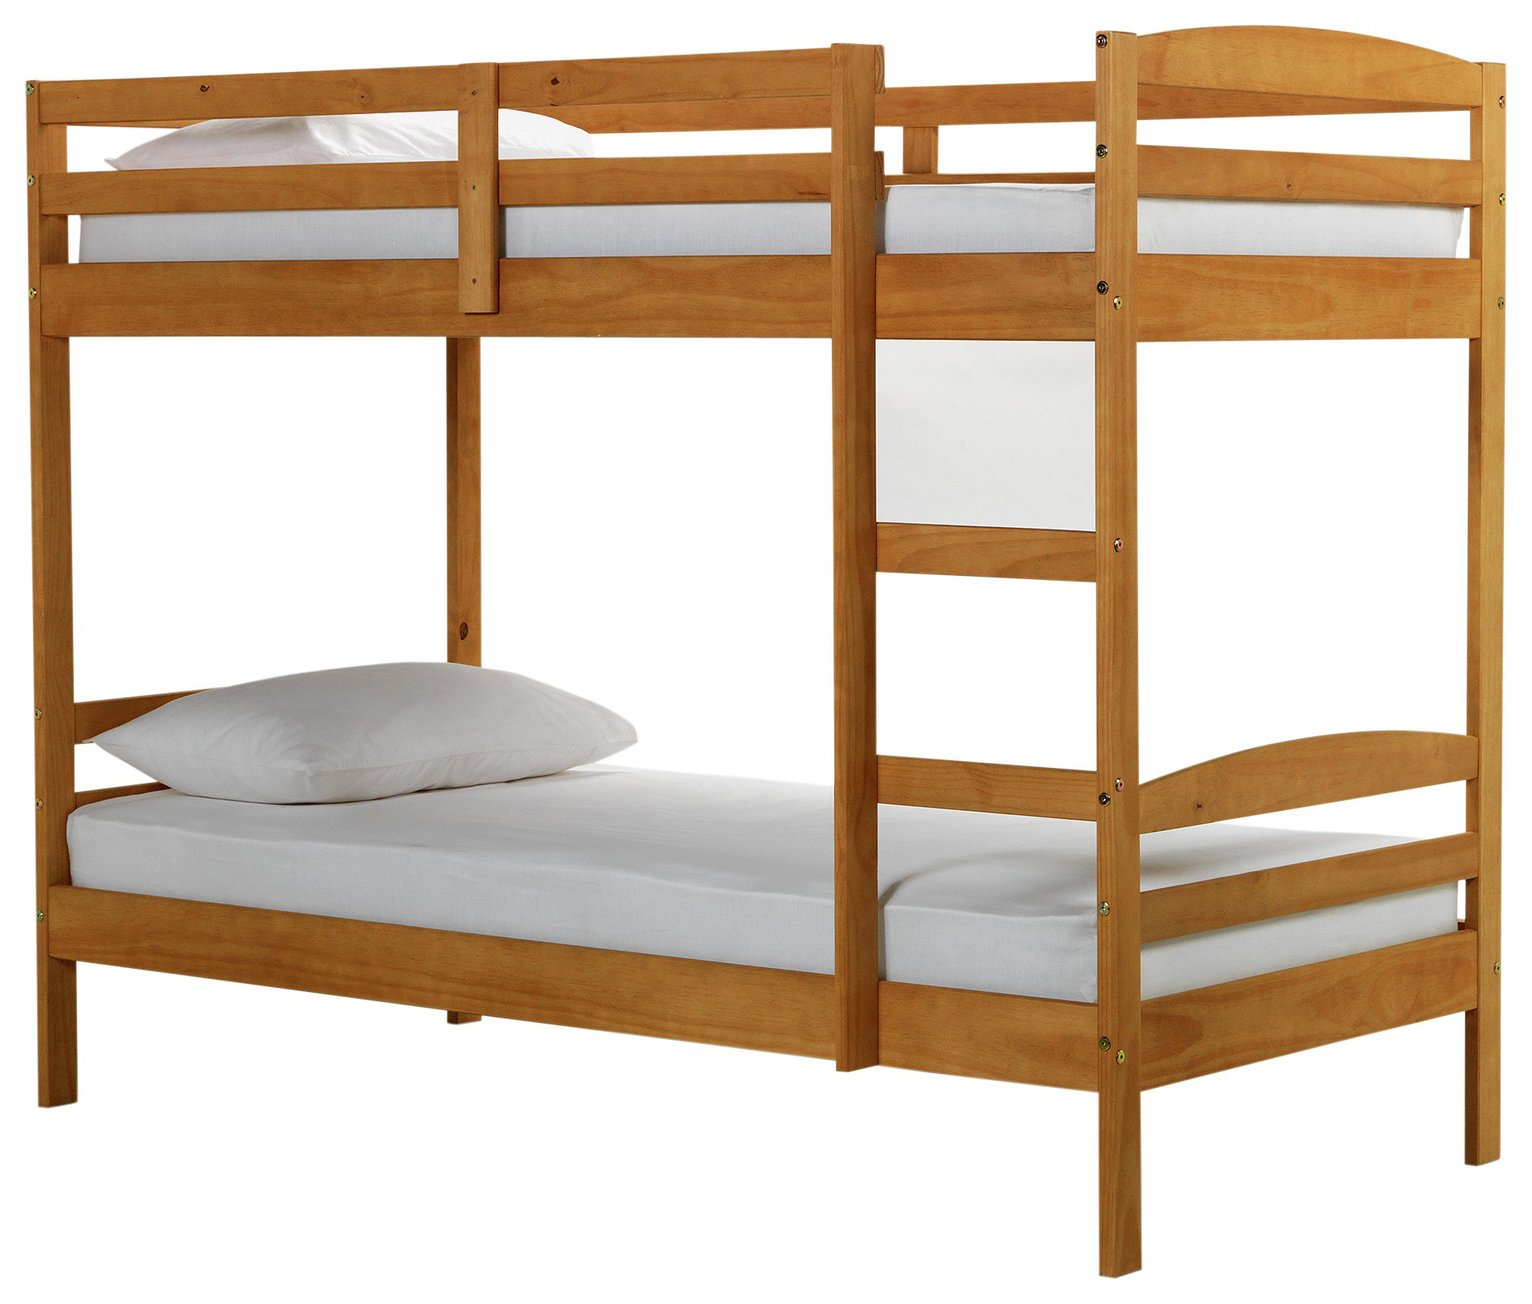 Josie shorty bunk bed frame white for White bunk bed frame